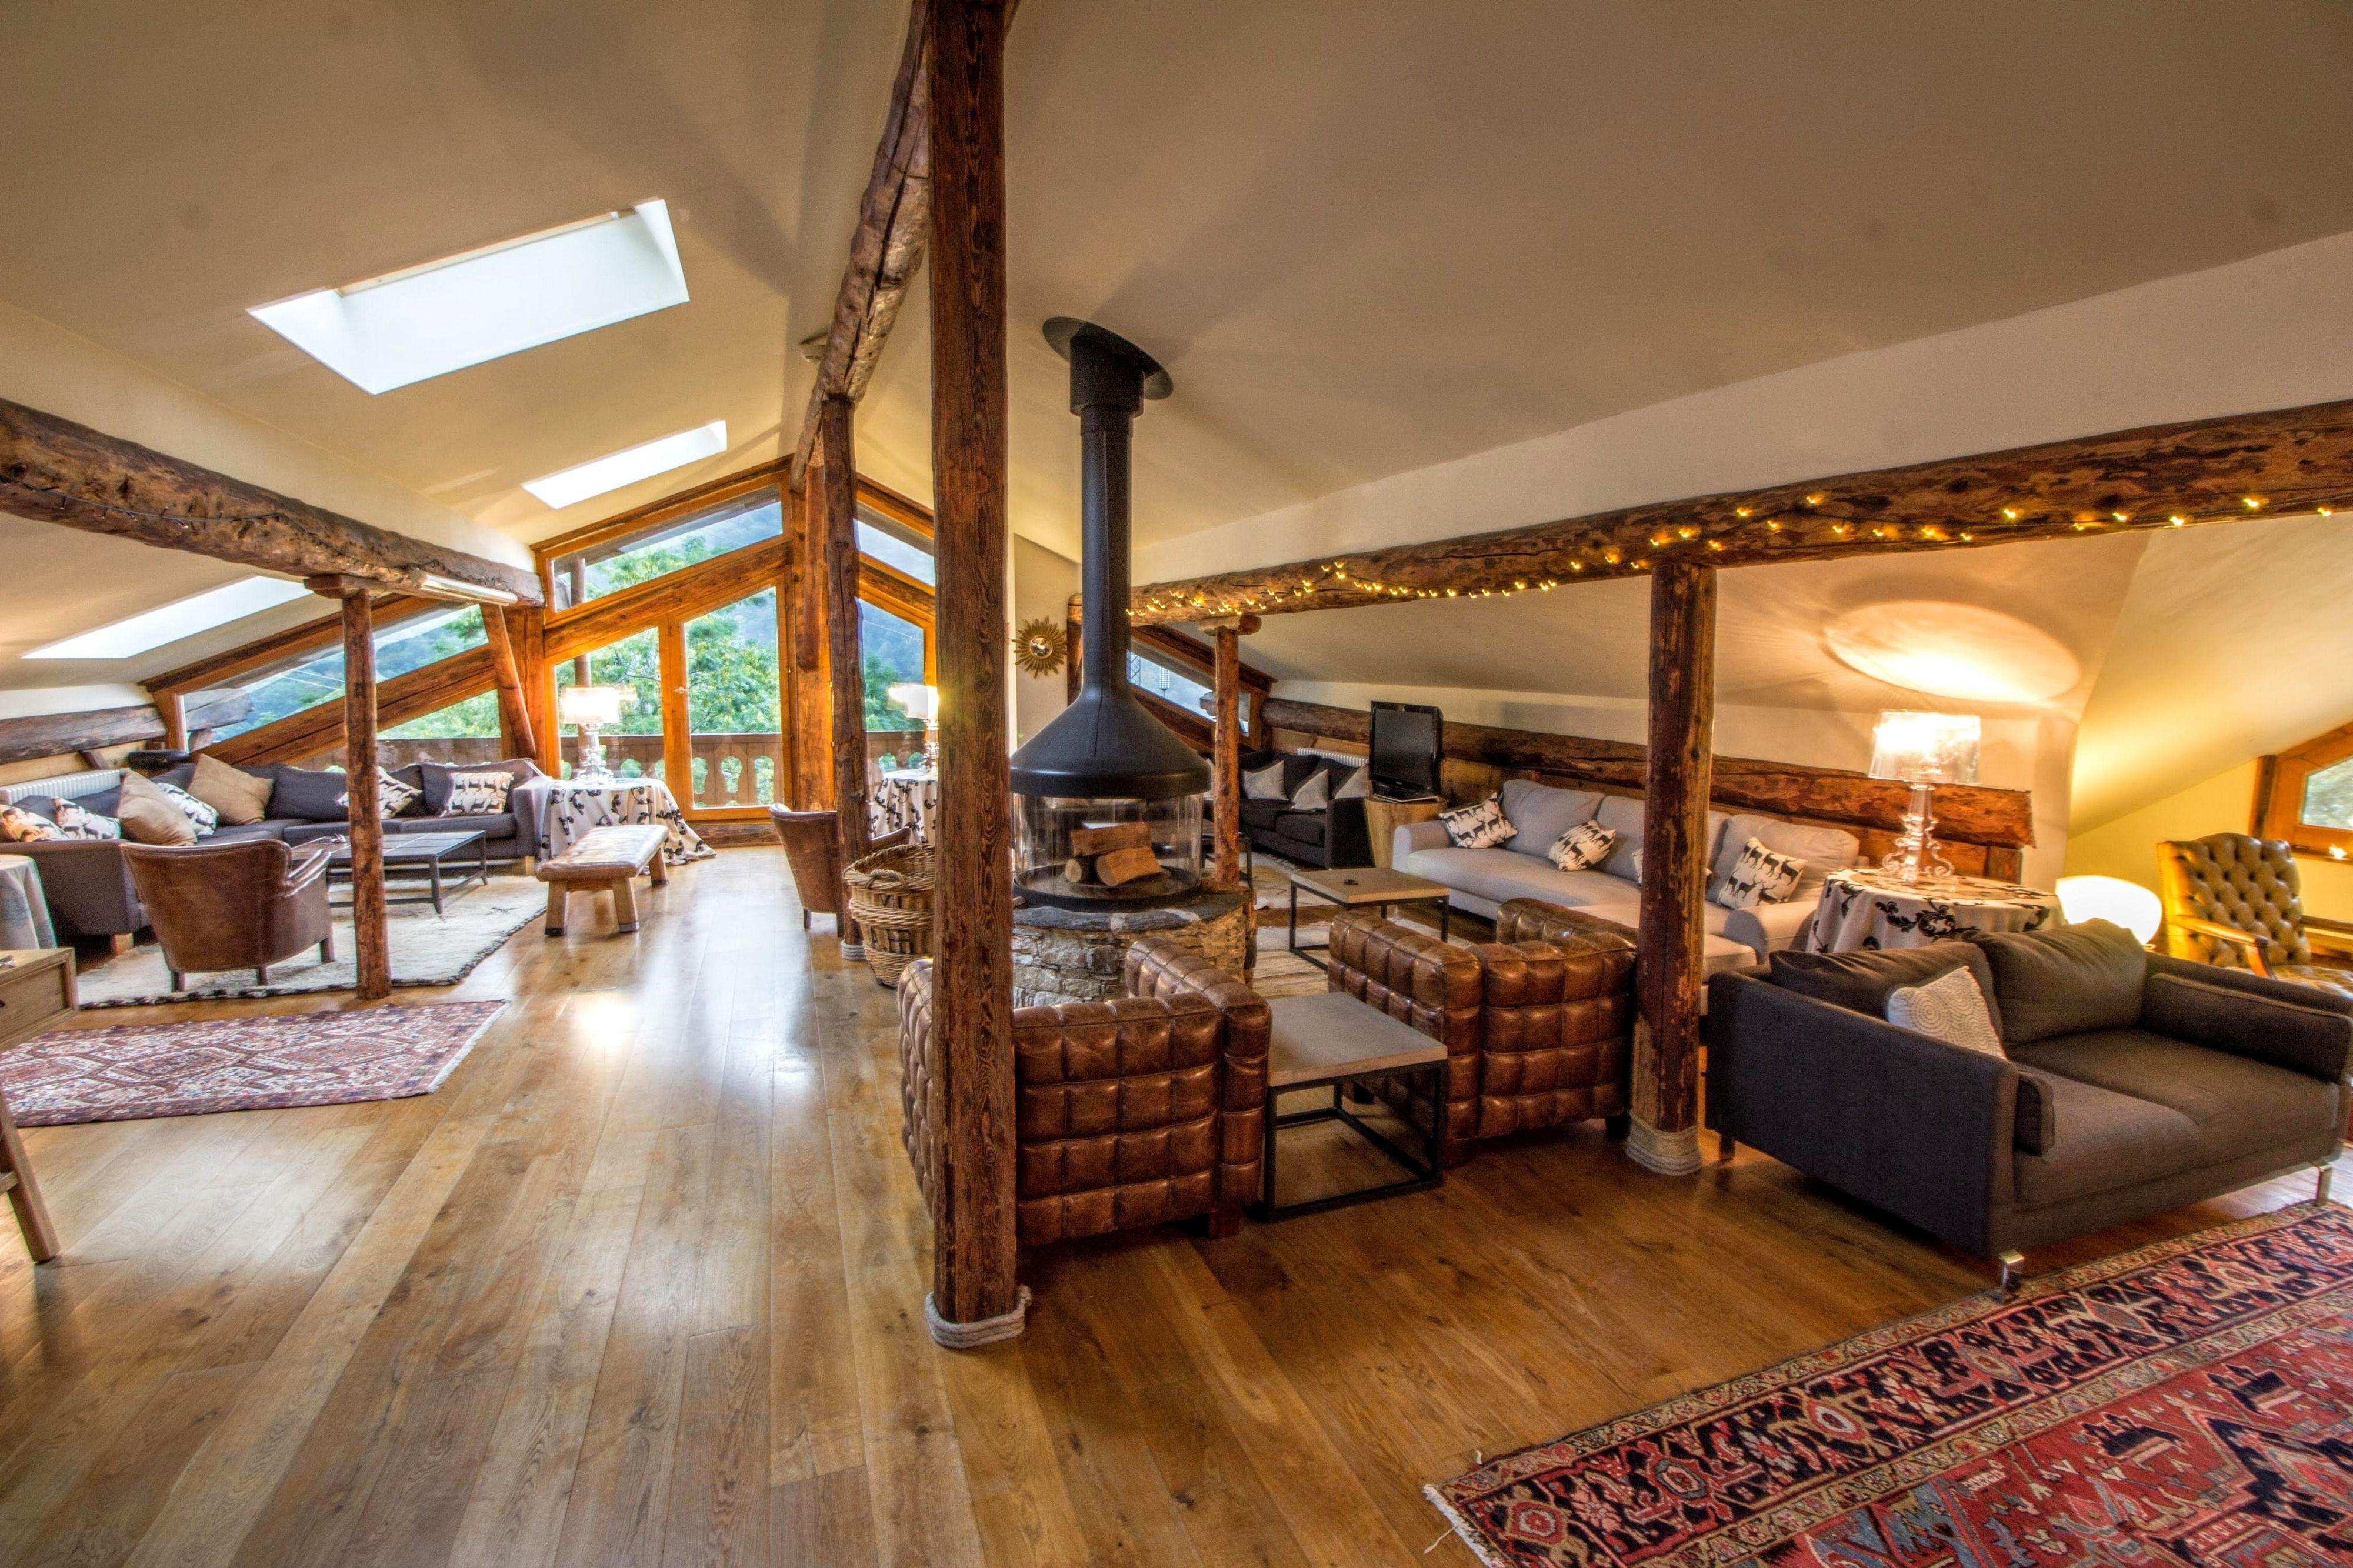 The Farmhouse Val D Isere Huge Luxurious Ski Chalet Close To Val D Isere Interiors